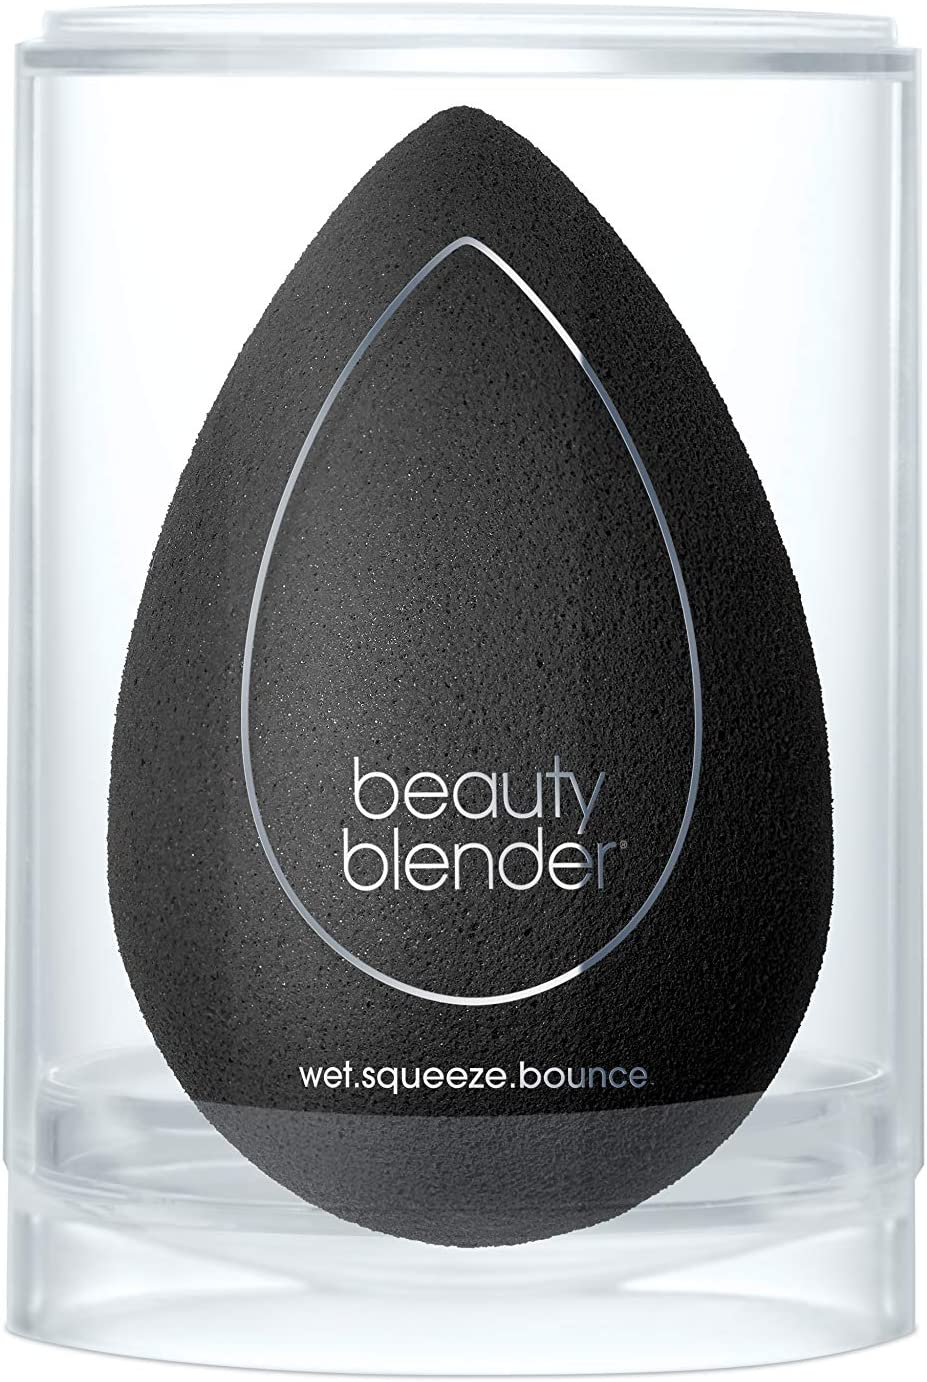 BEAUTYBLENDER PRO Makeup Sponge for Applying Foundations, Powders & Creams. Vegan, Cruelty Free and Made in the USA